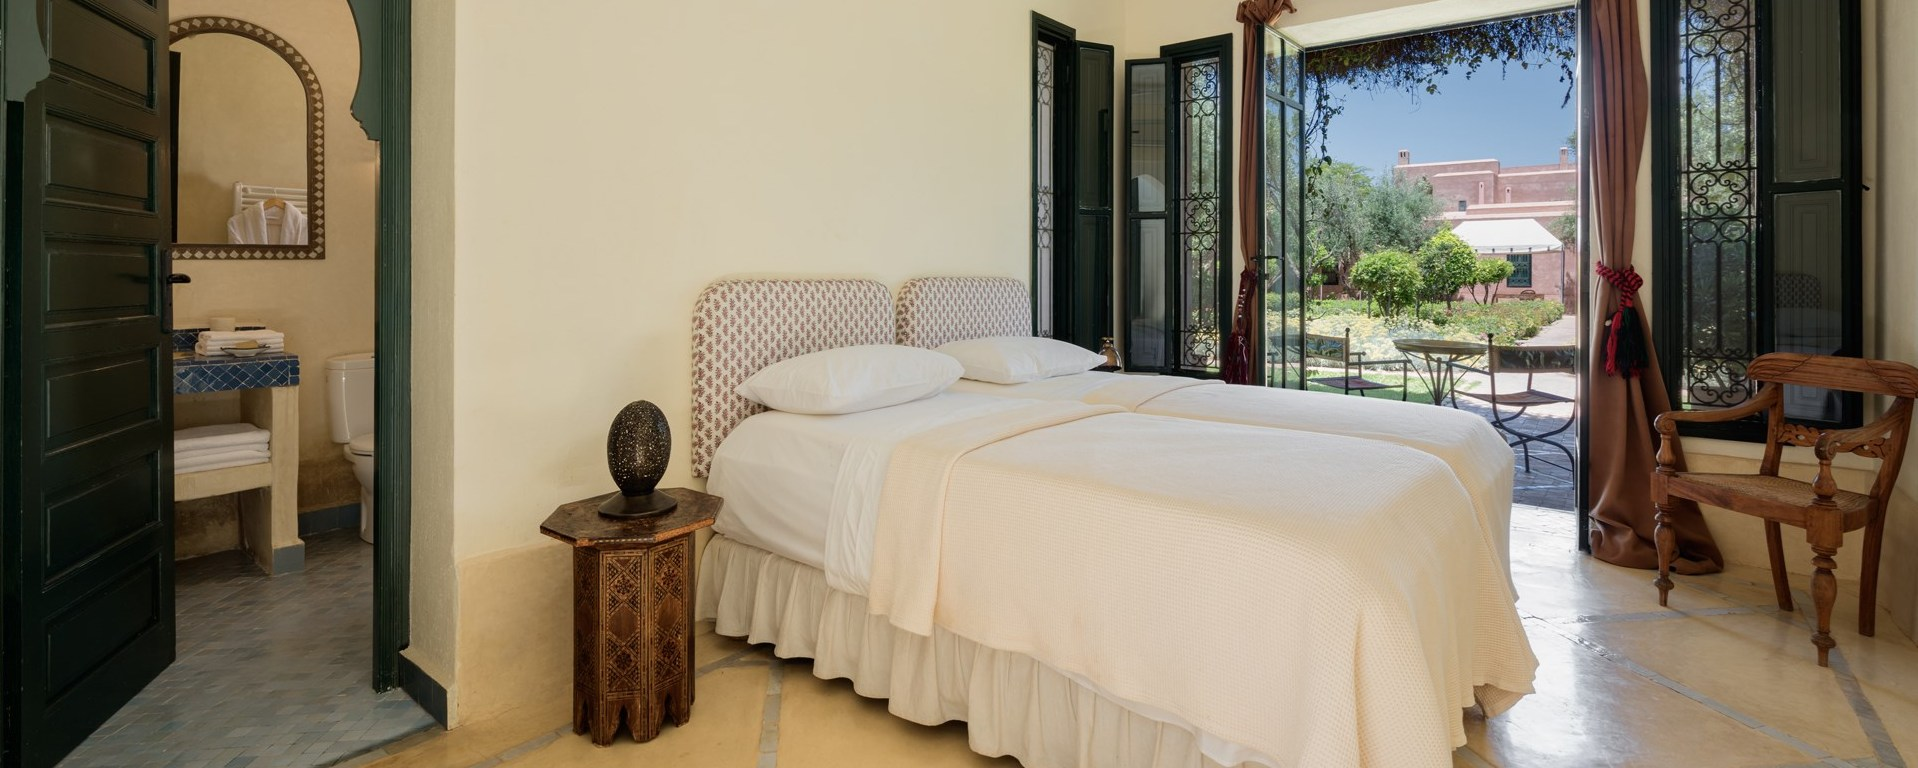 dar-des-roses-blanches-twin-bedroom1